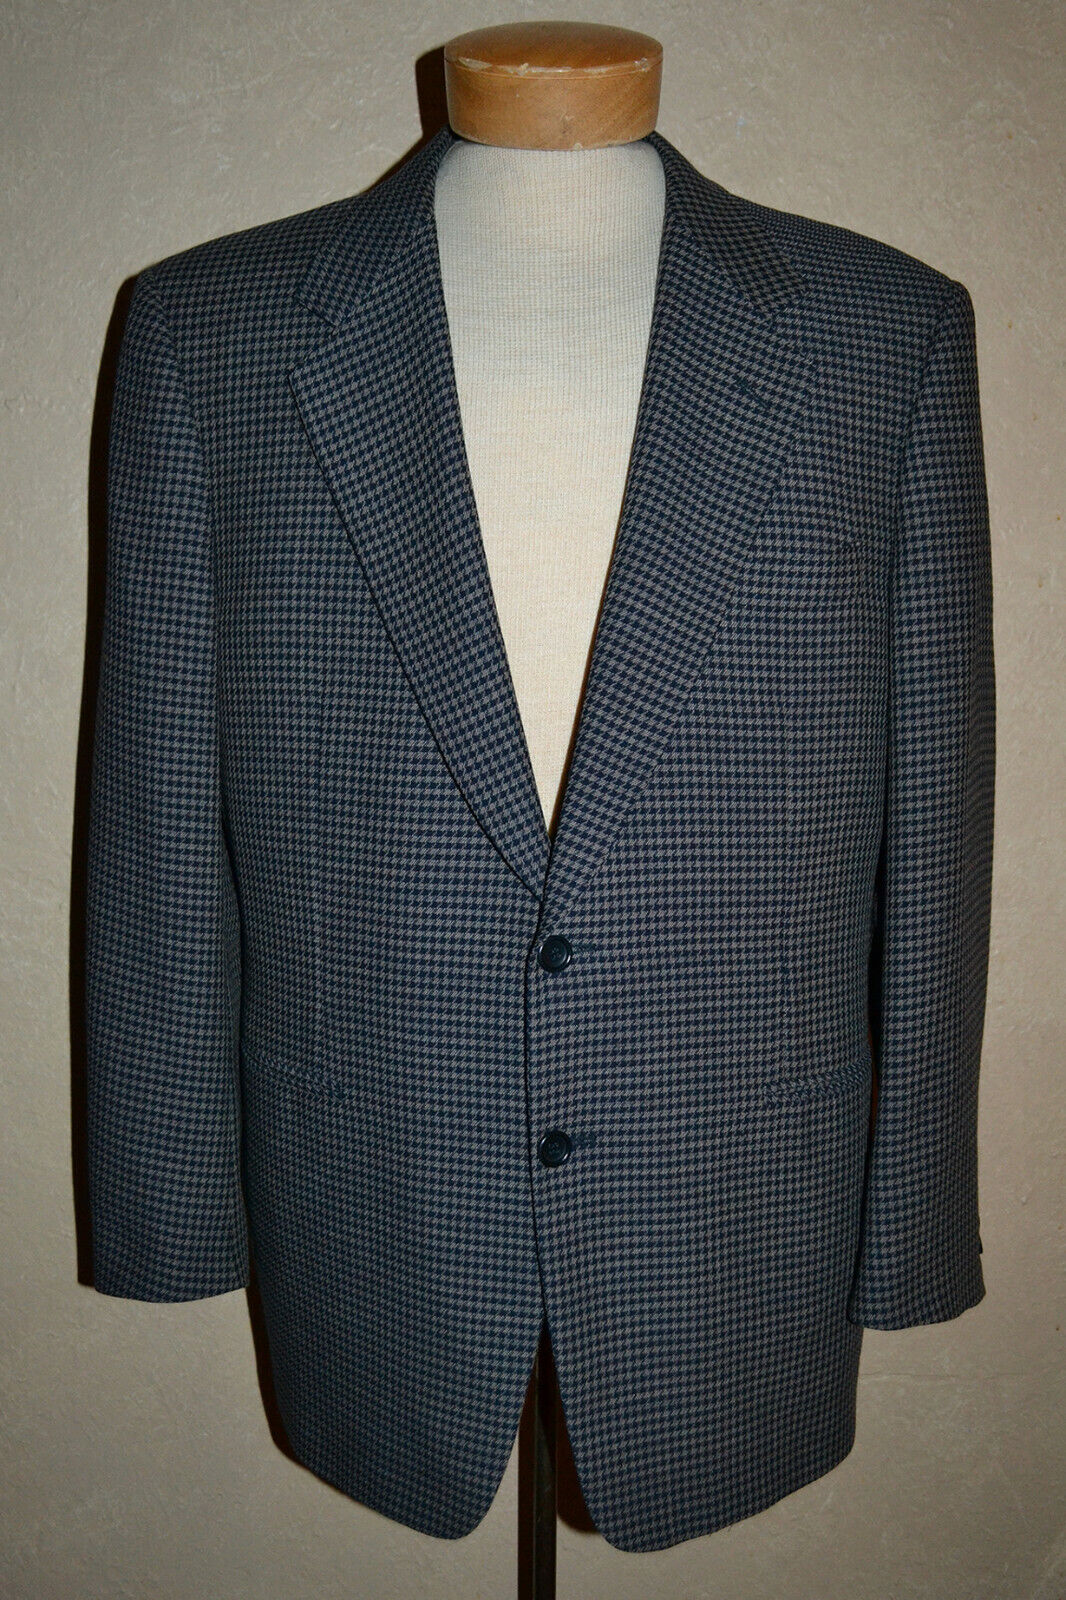 Canali for Bloomingdales 40R 50R Navy & Khaki Wool Houndstooth Sport Coat